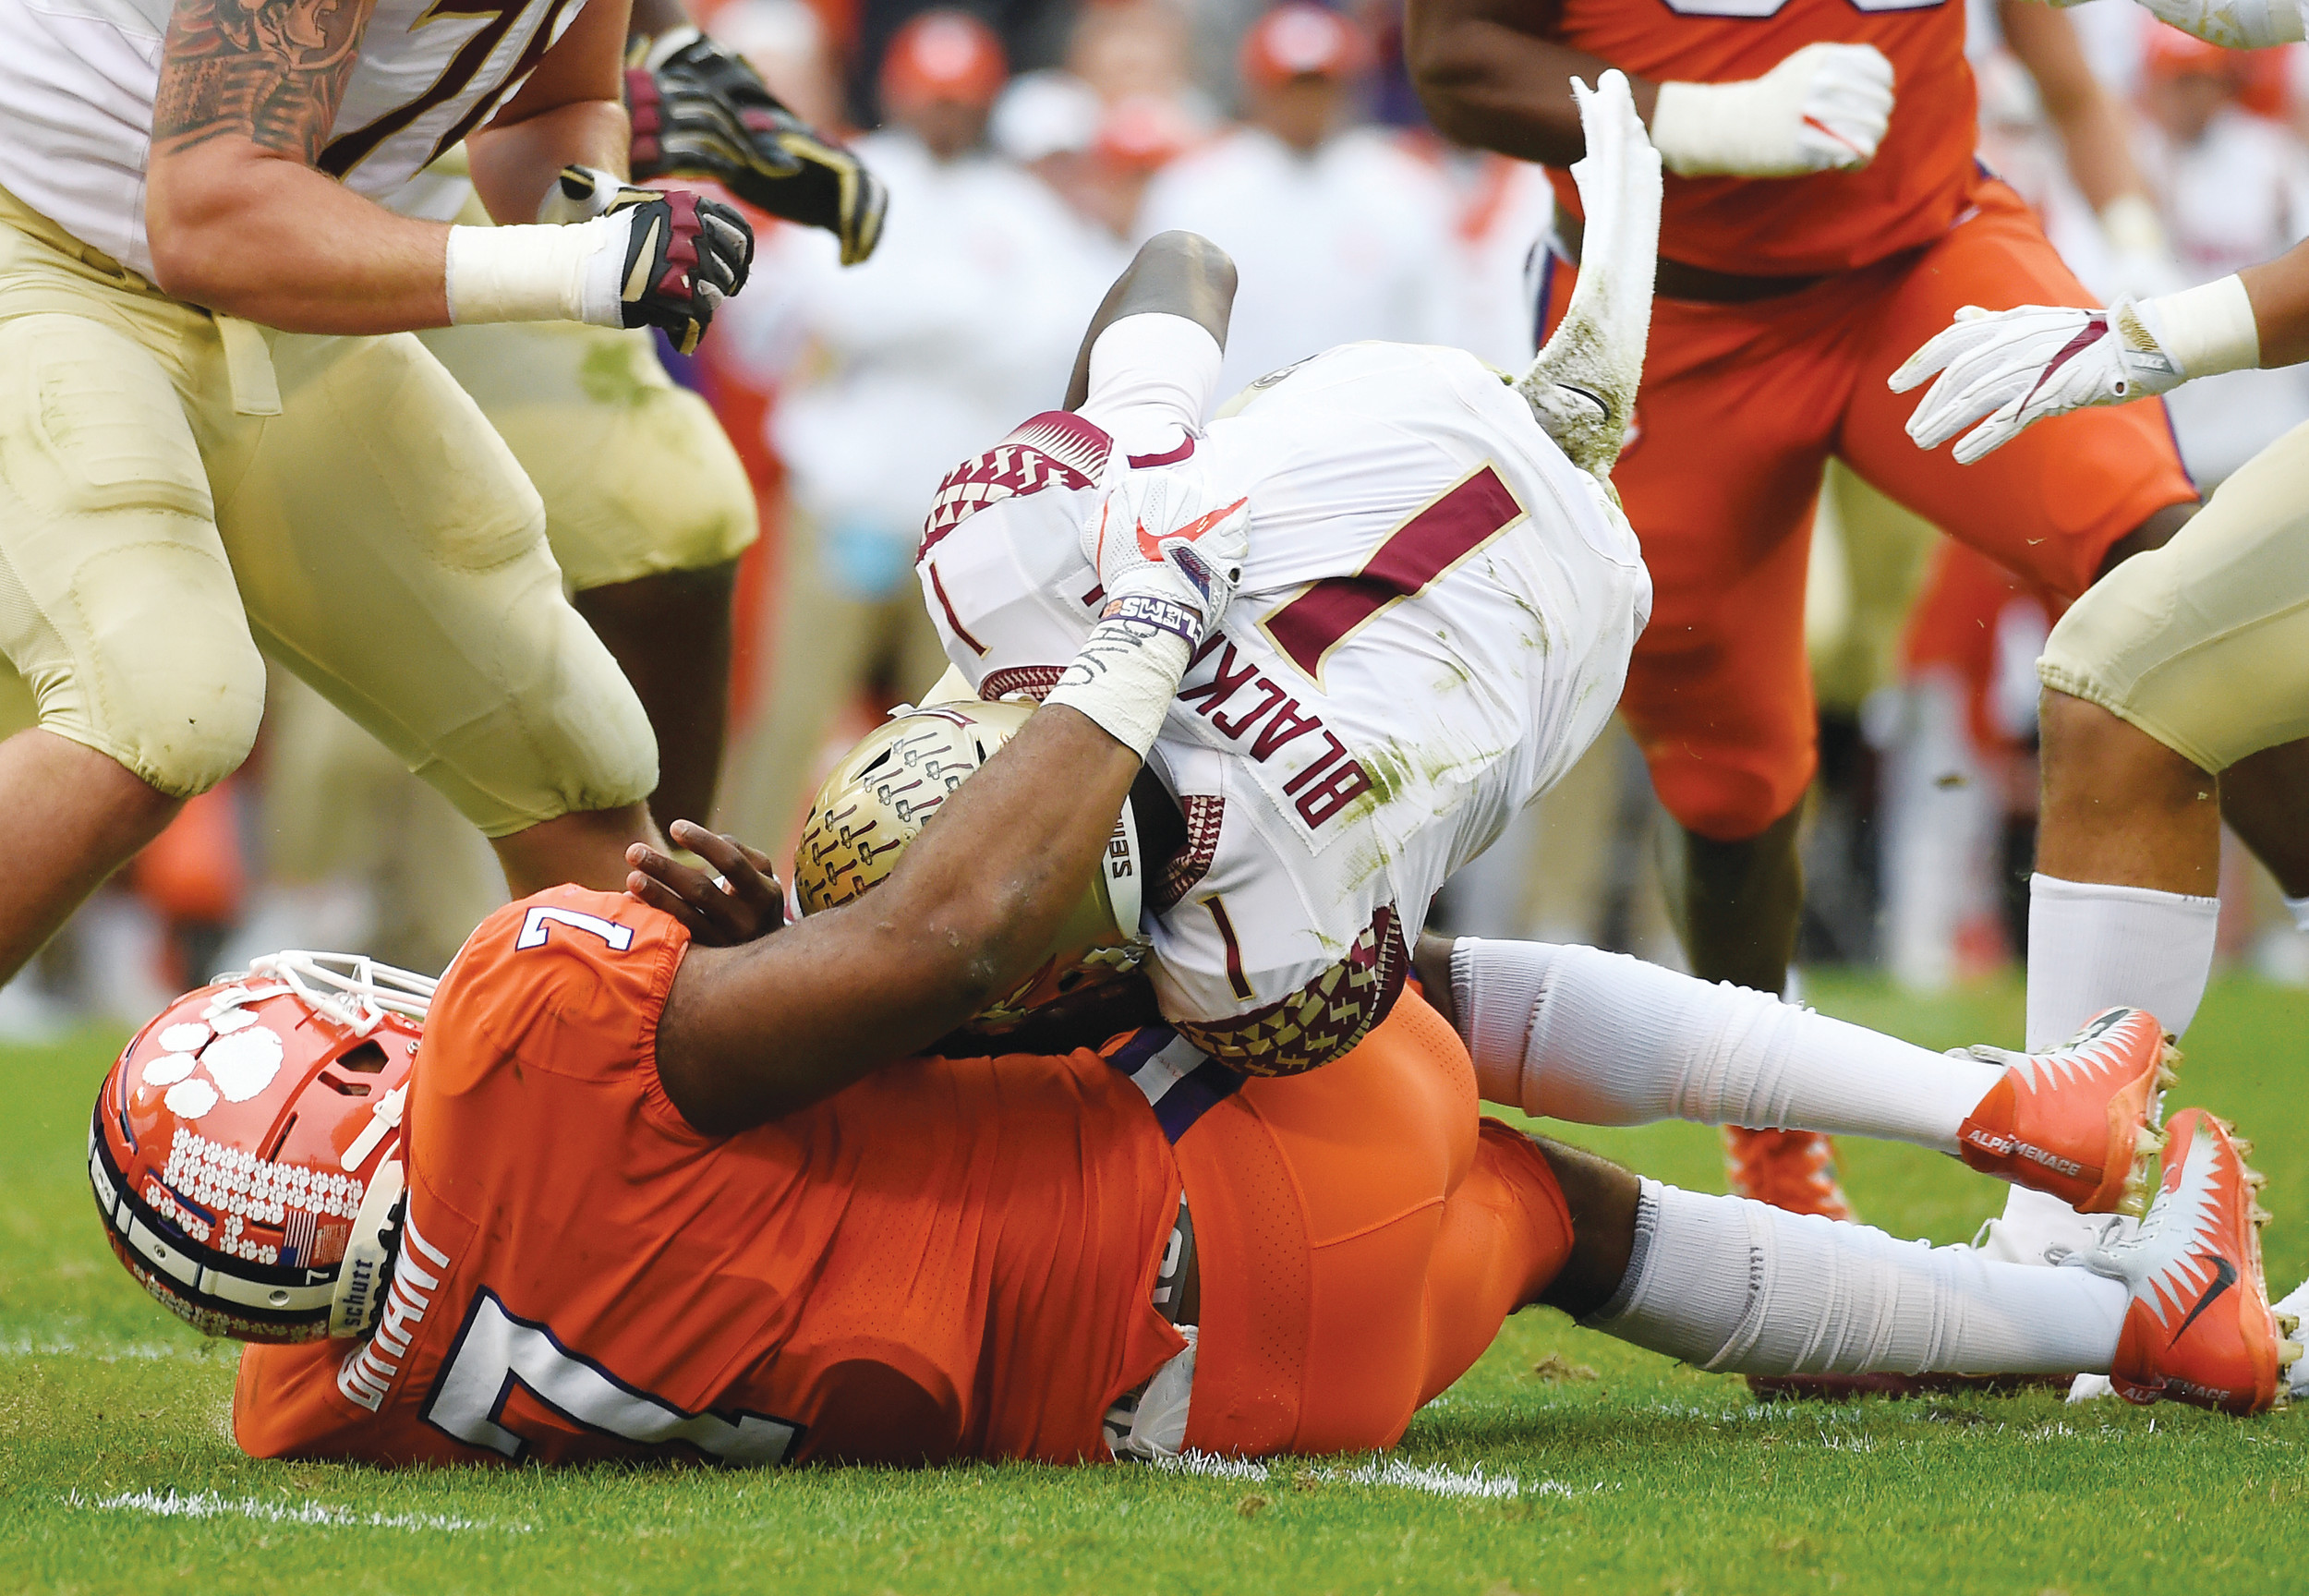 Clemson defensive end Austin Bryant (7) sacks Florida State quarterback James Blackman (1) during the first half of the Tigers' 31-14 victory on Saturday in Clemson. The Tigers will play host to The Citadel this Saturday at noon.